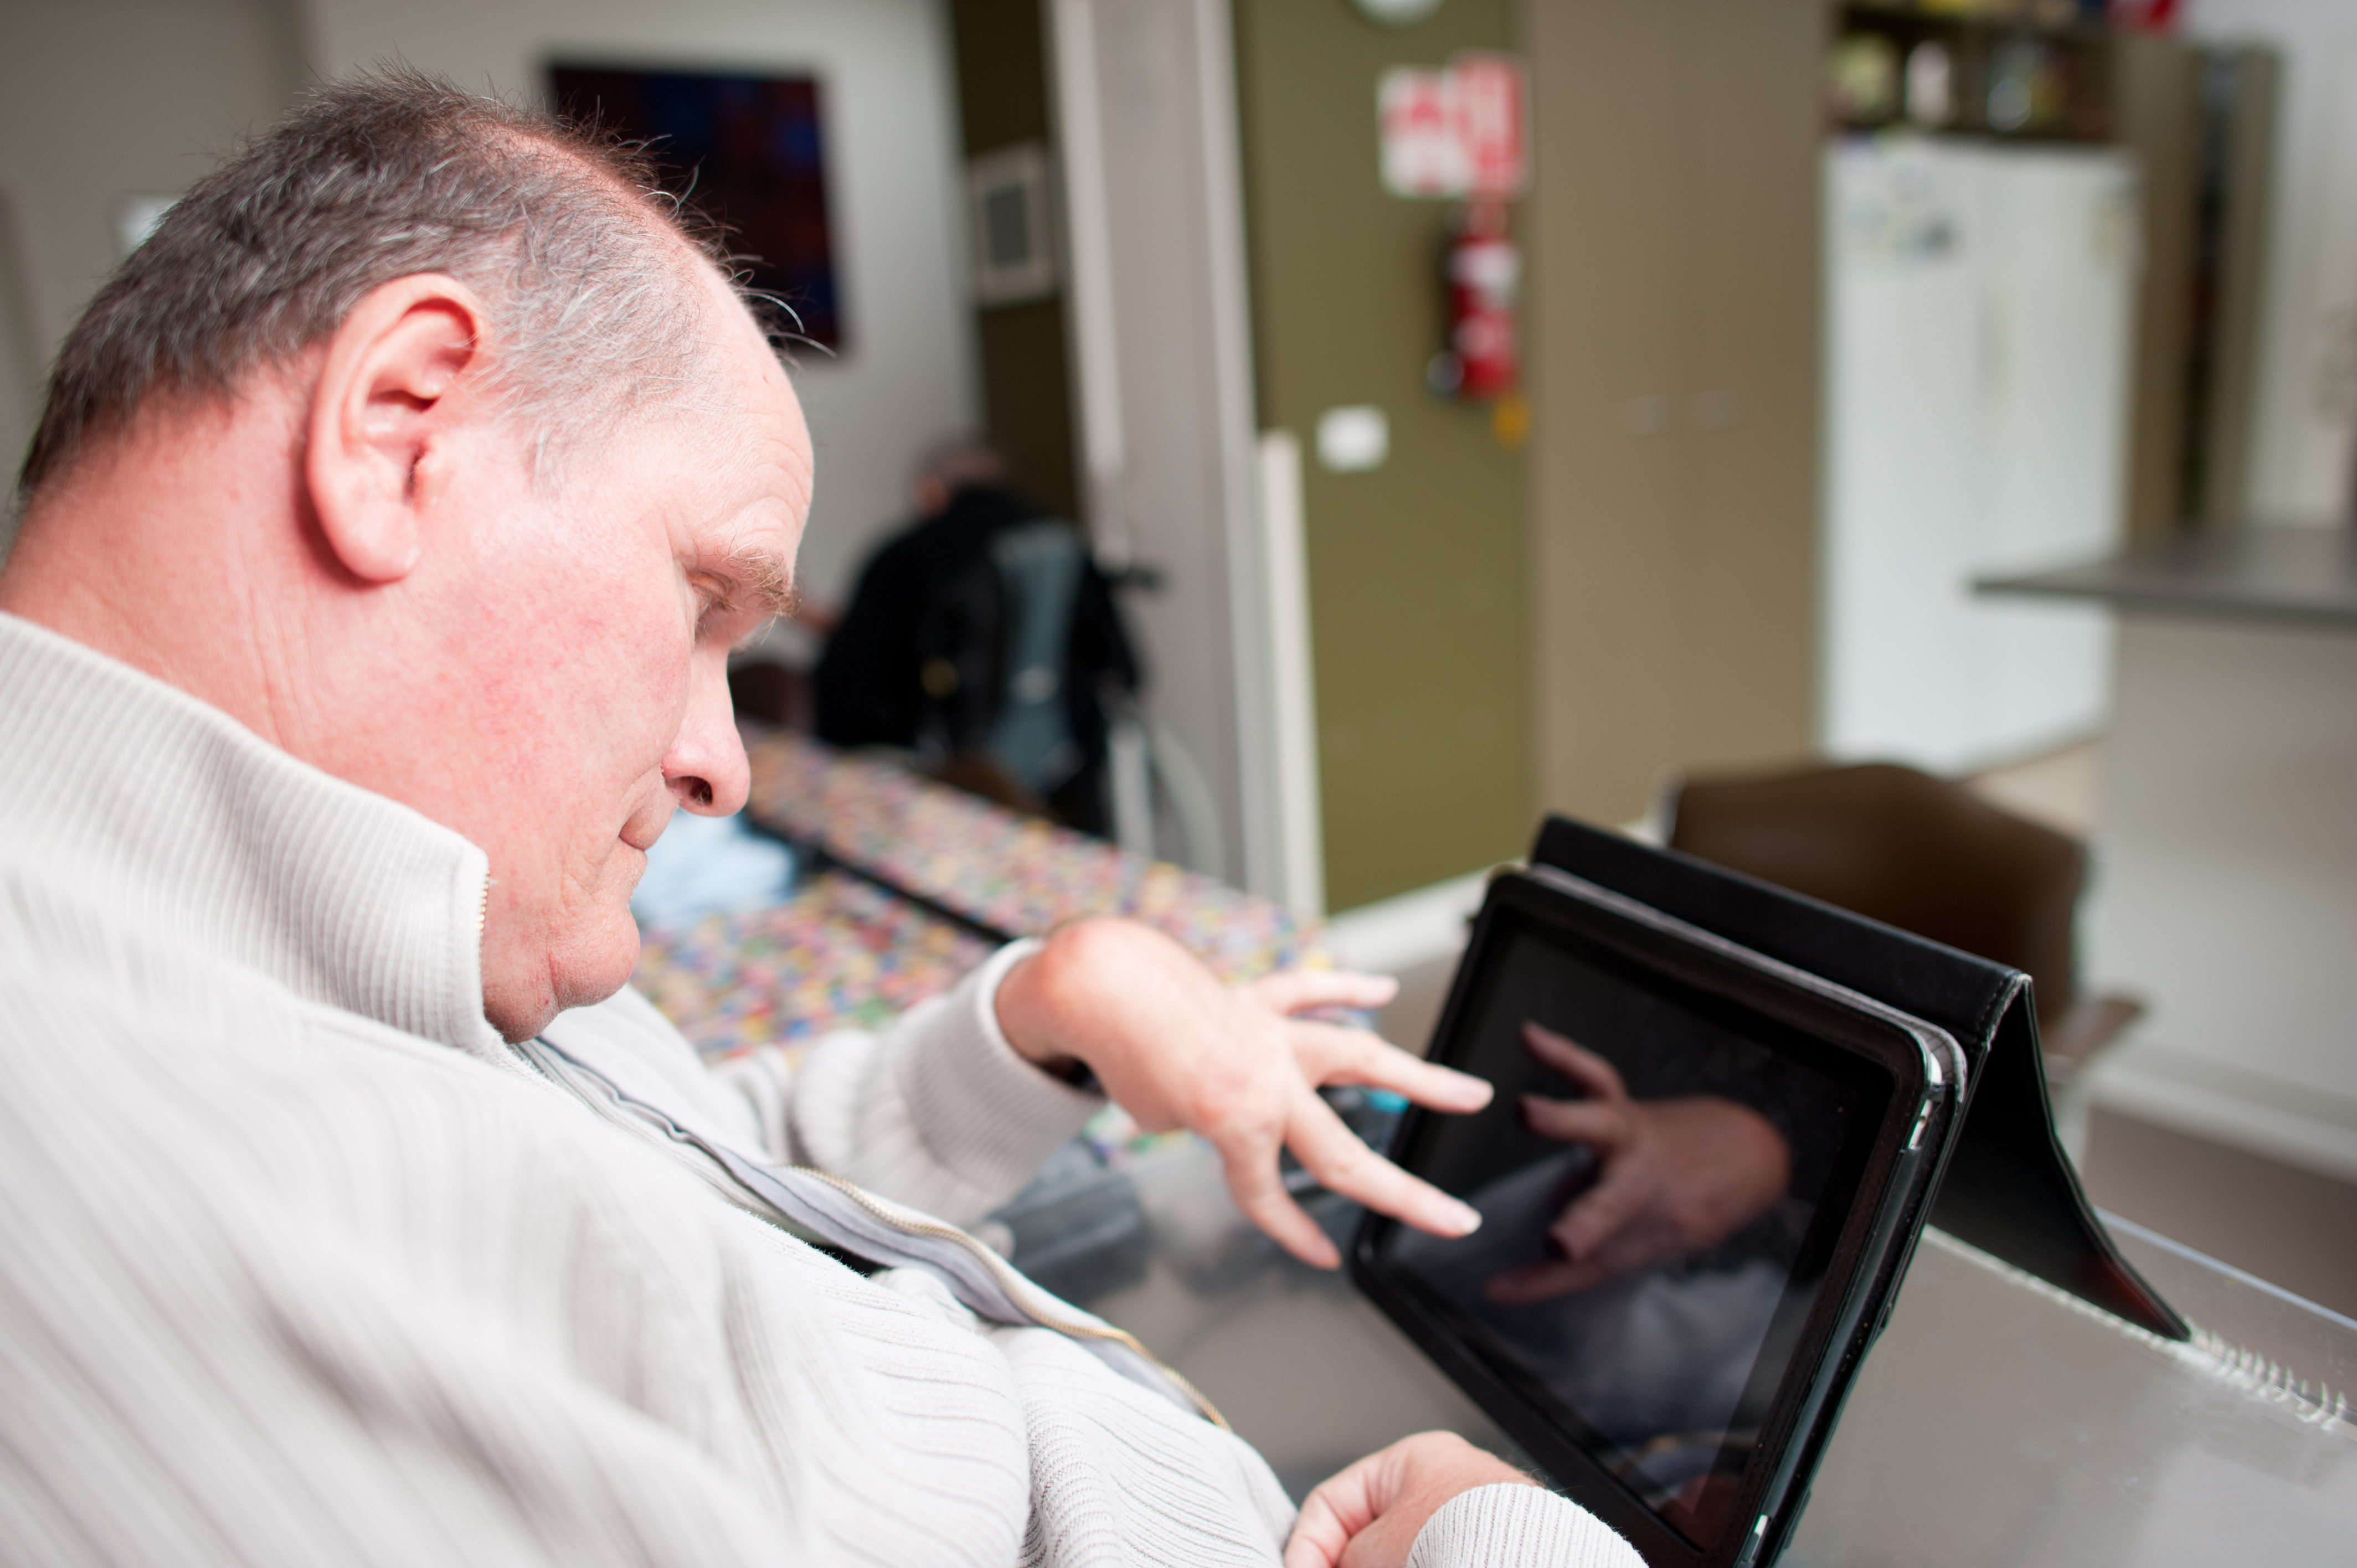 A man with cerebral palsy uses assistive technology for independence